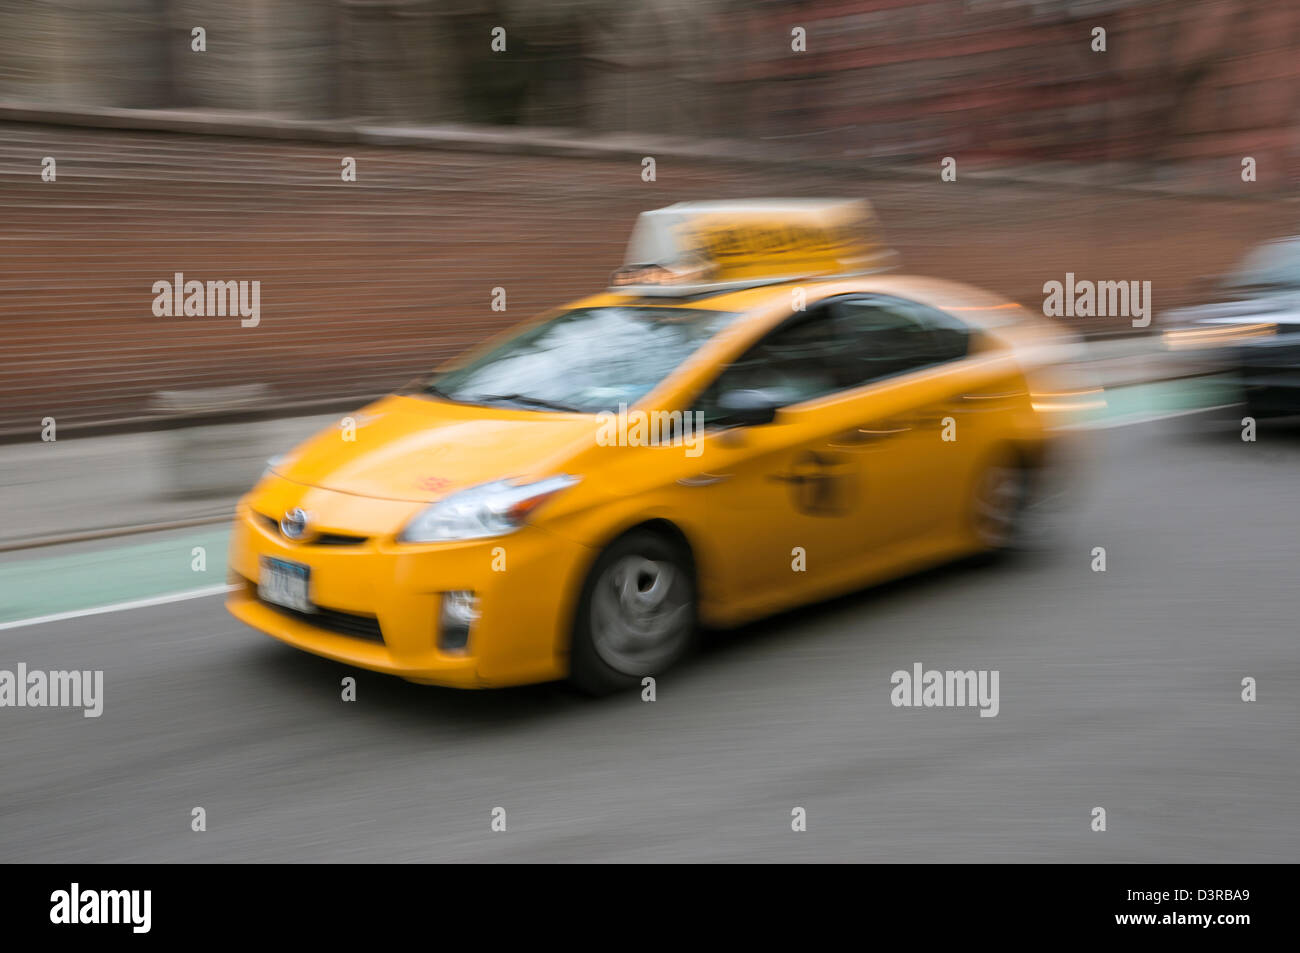 New hybrid taxi in New York City, a yellow taxicab - Stock Image